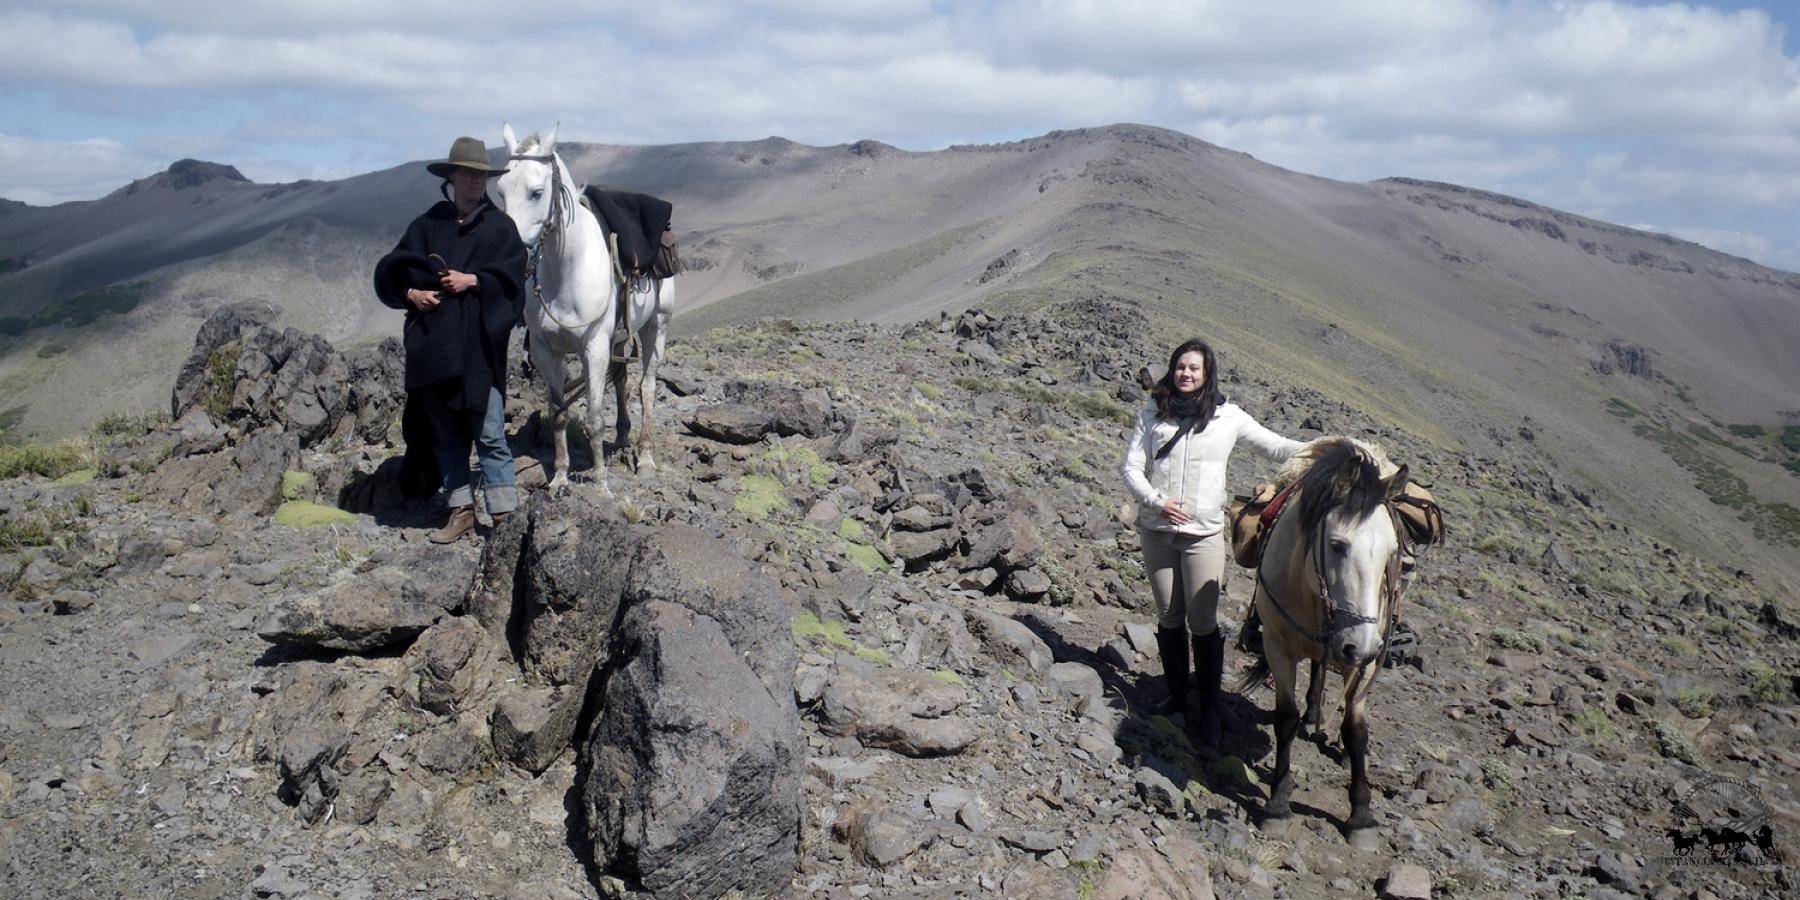 Horseback on a high pass in the Andes